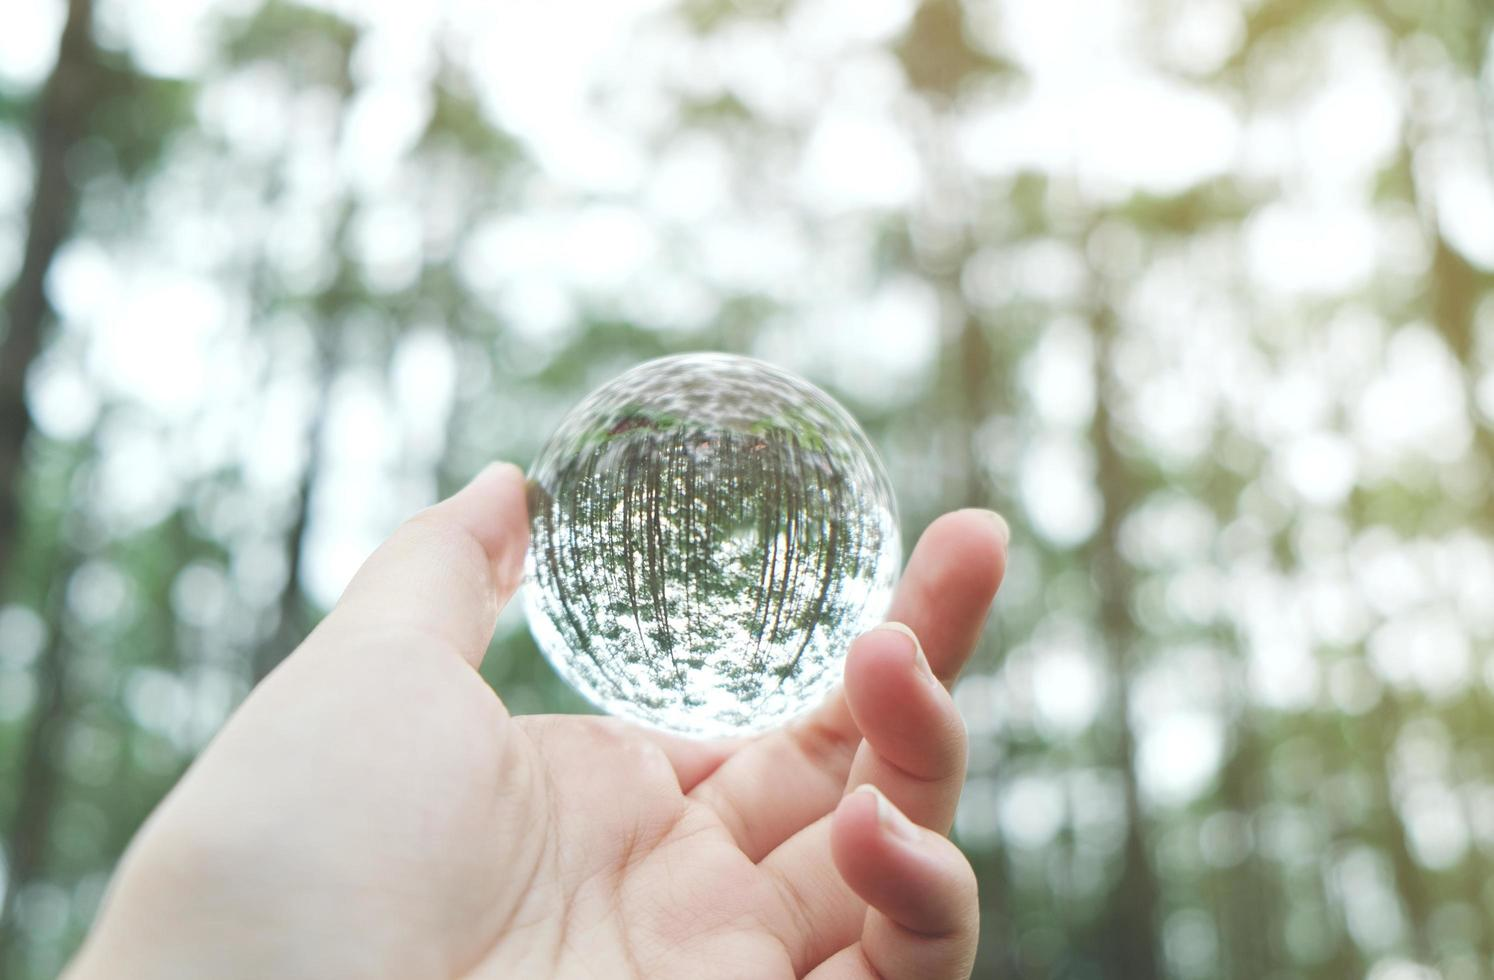 Crystal glass ball in nature photo